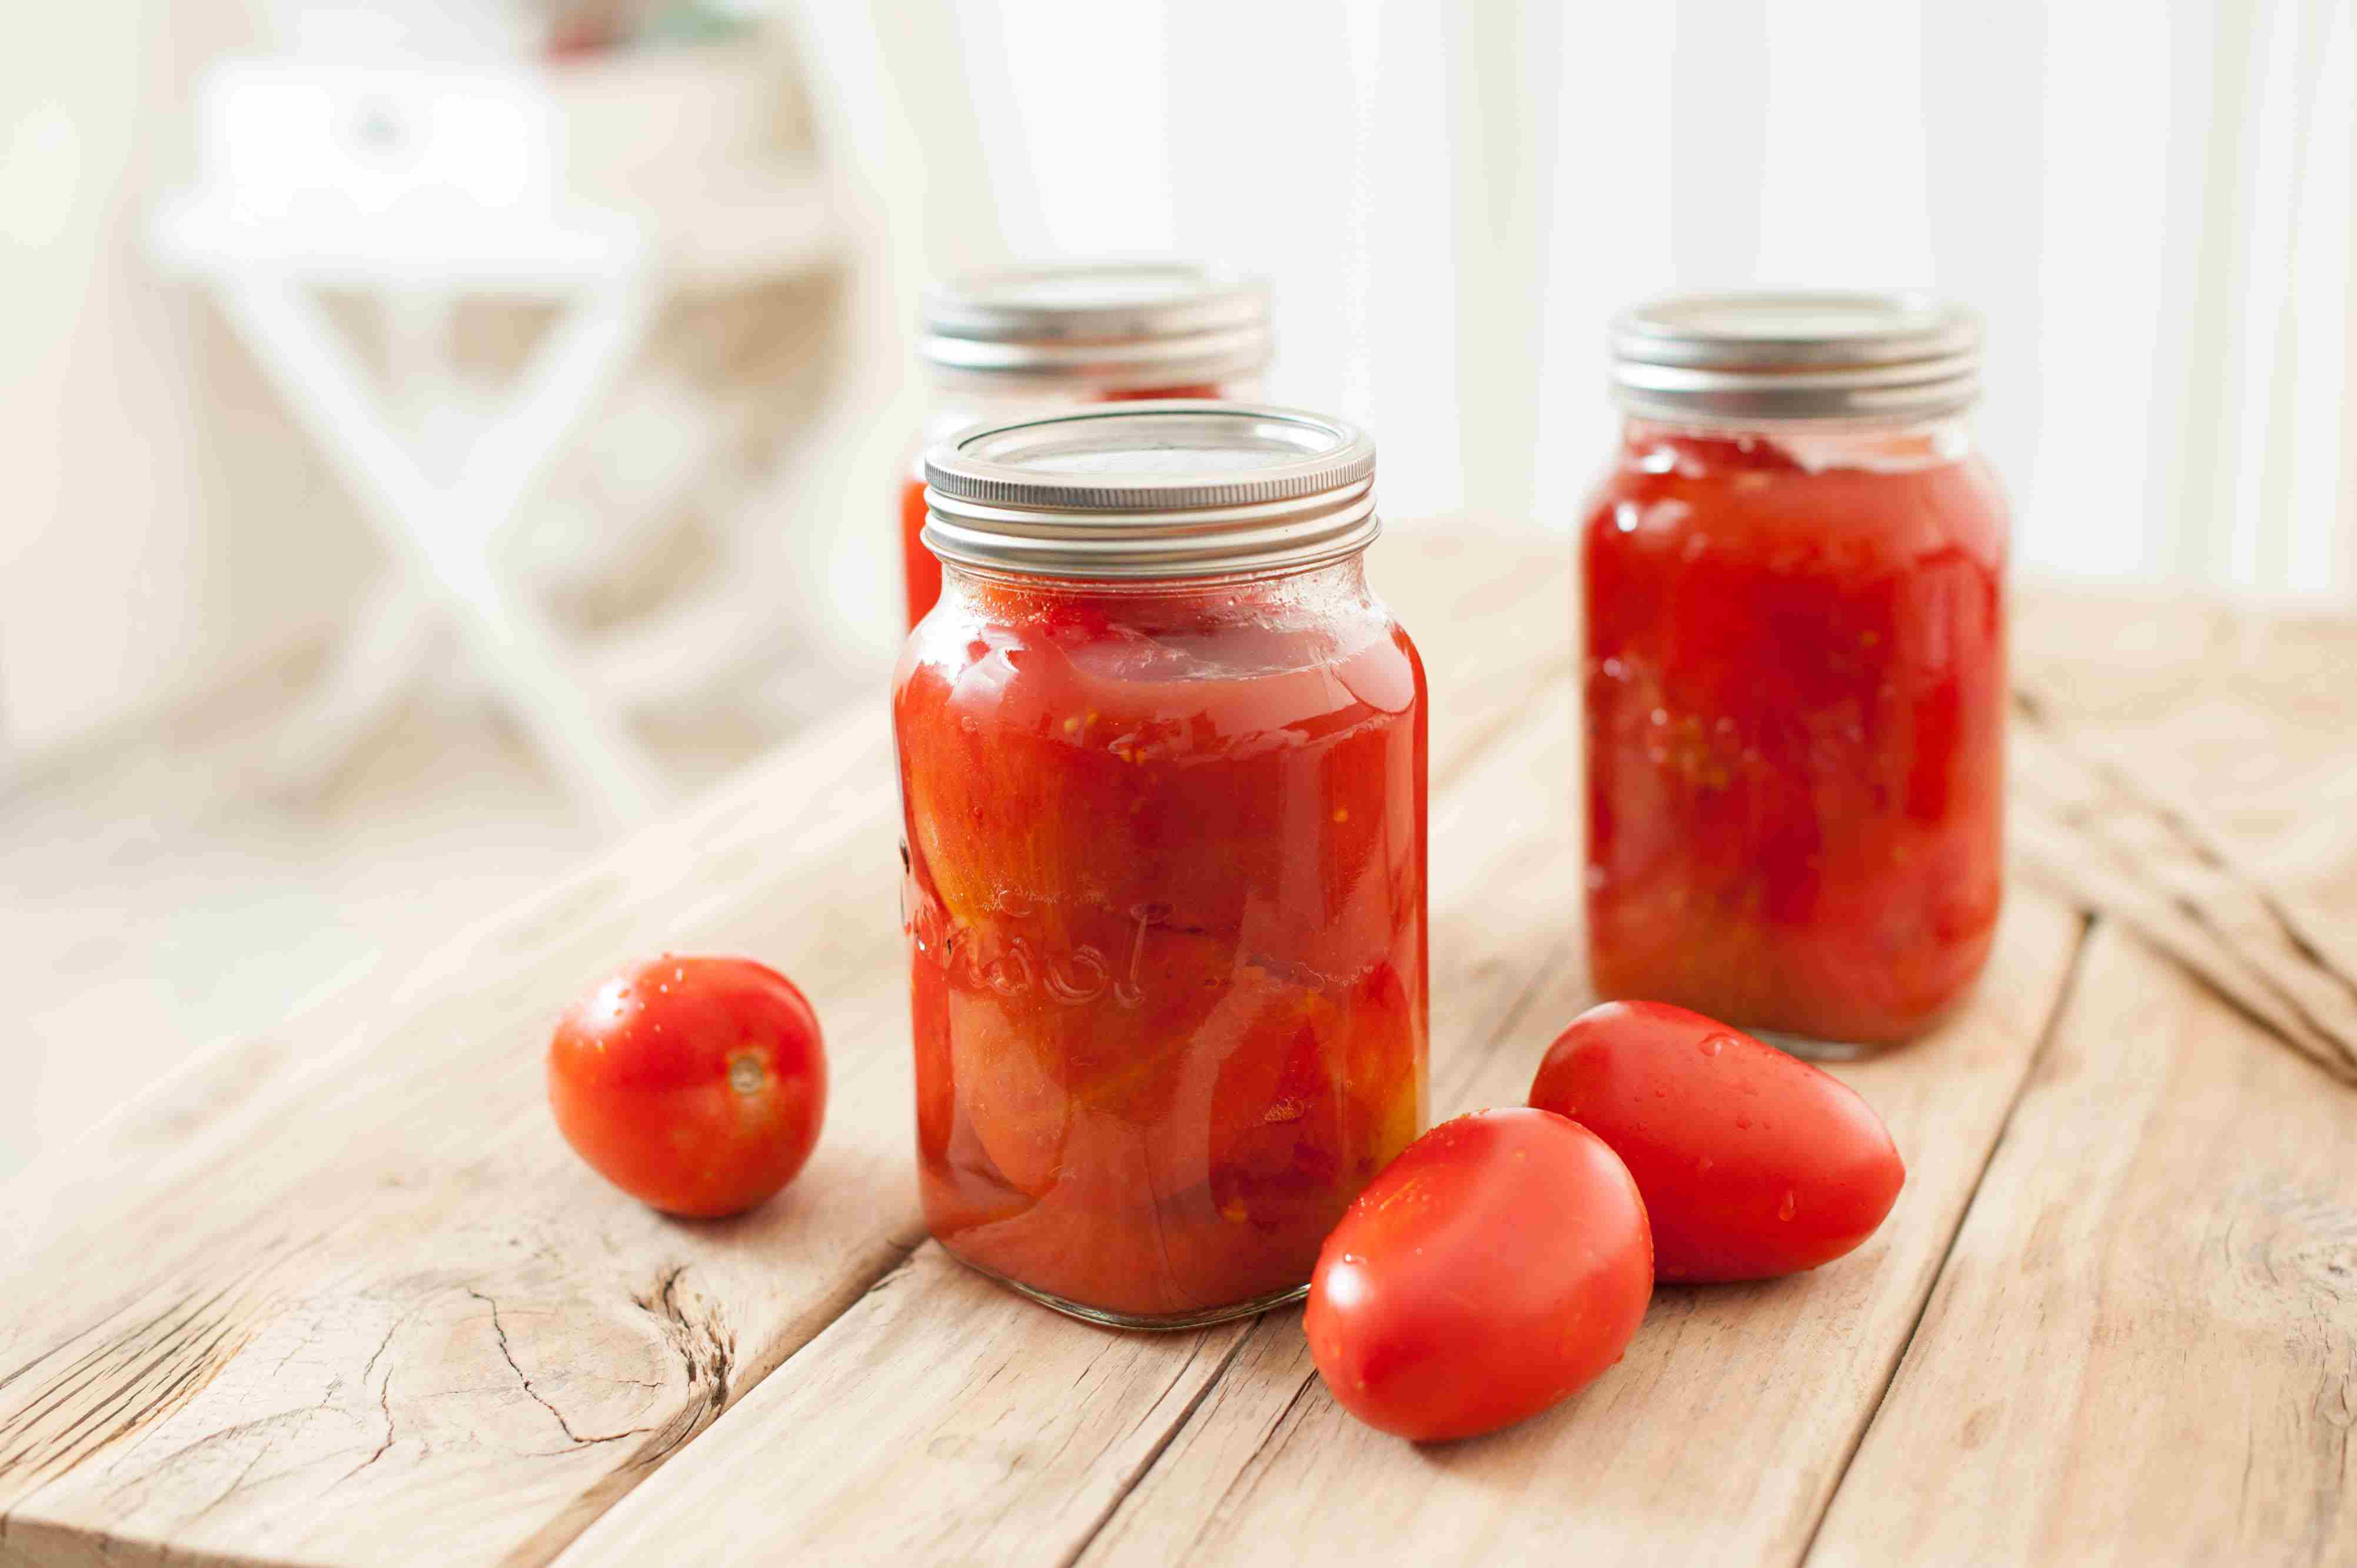 Finished canned tomatoes